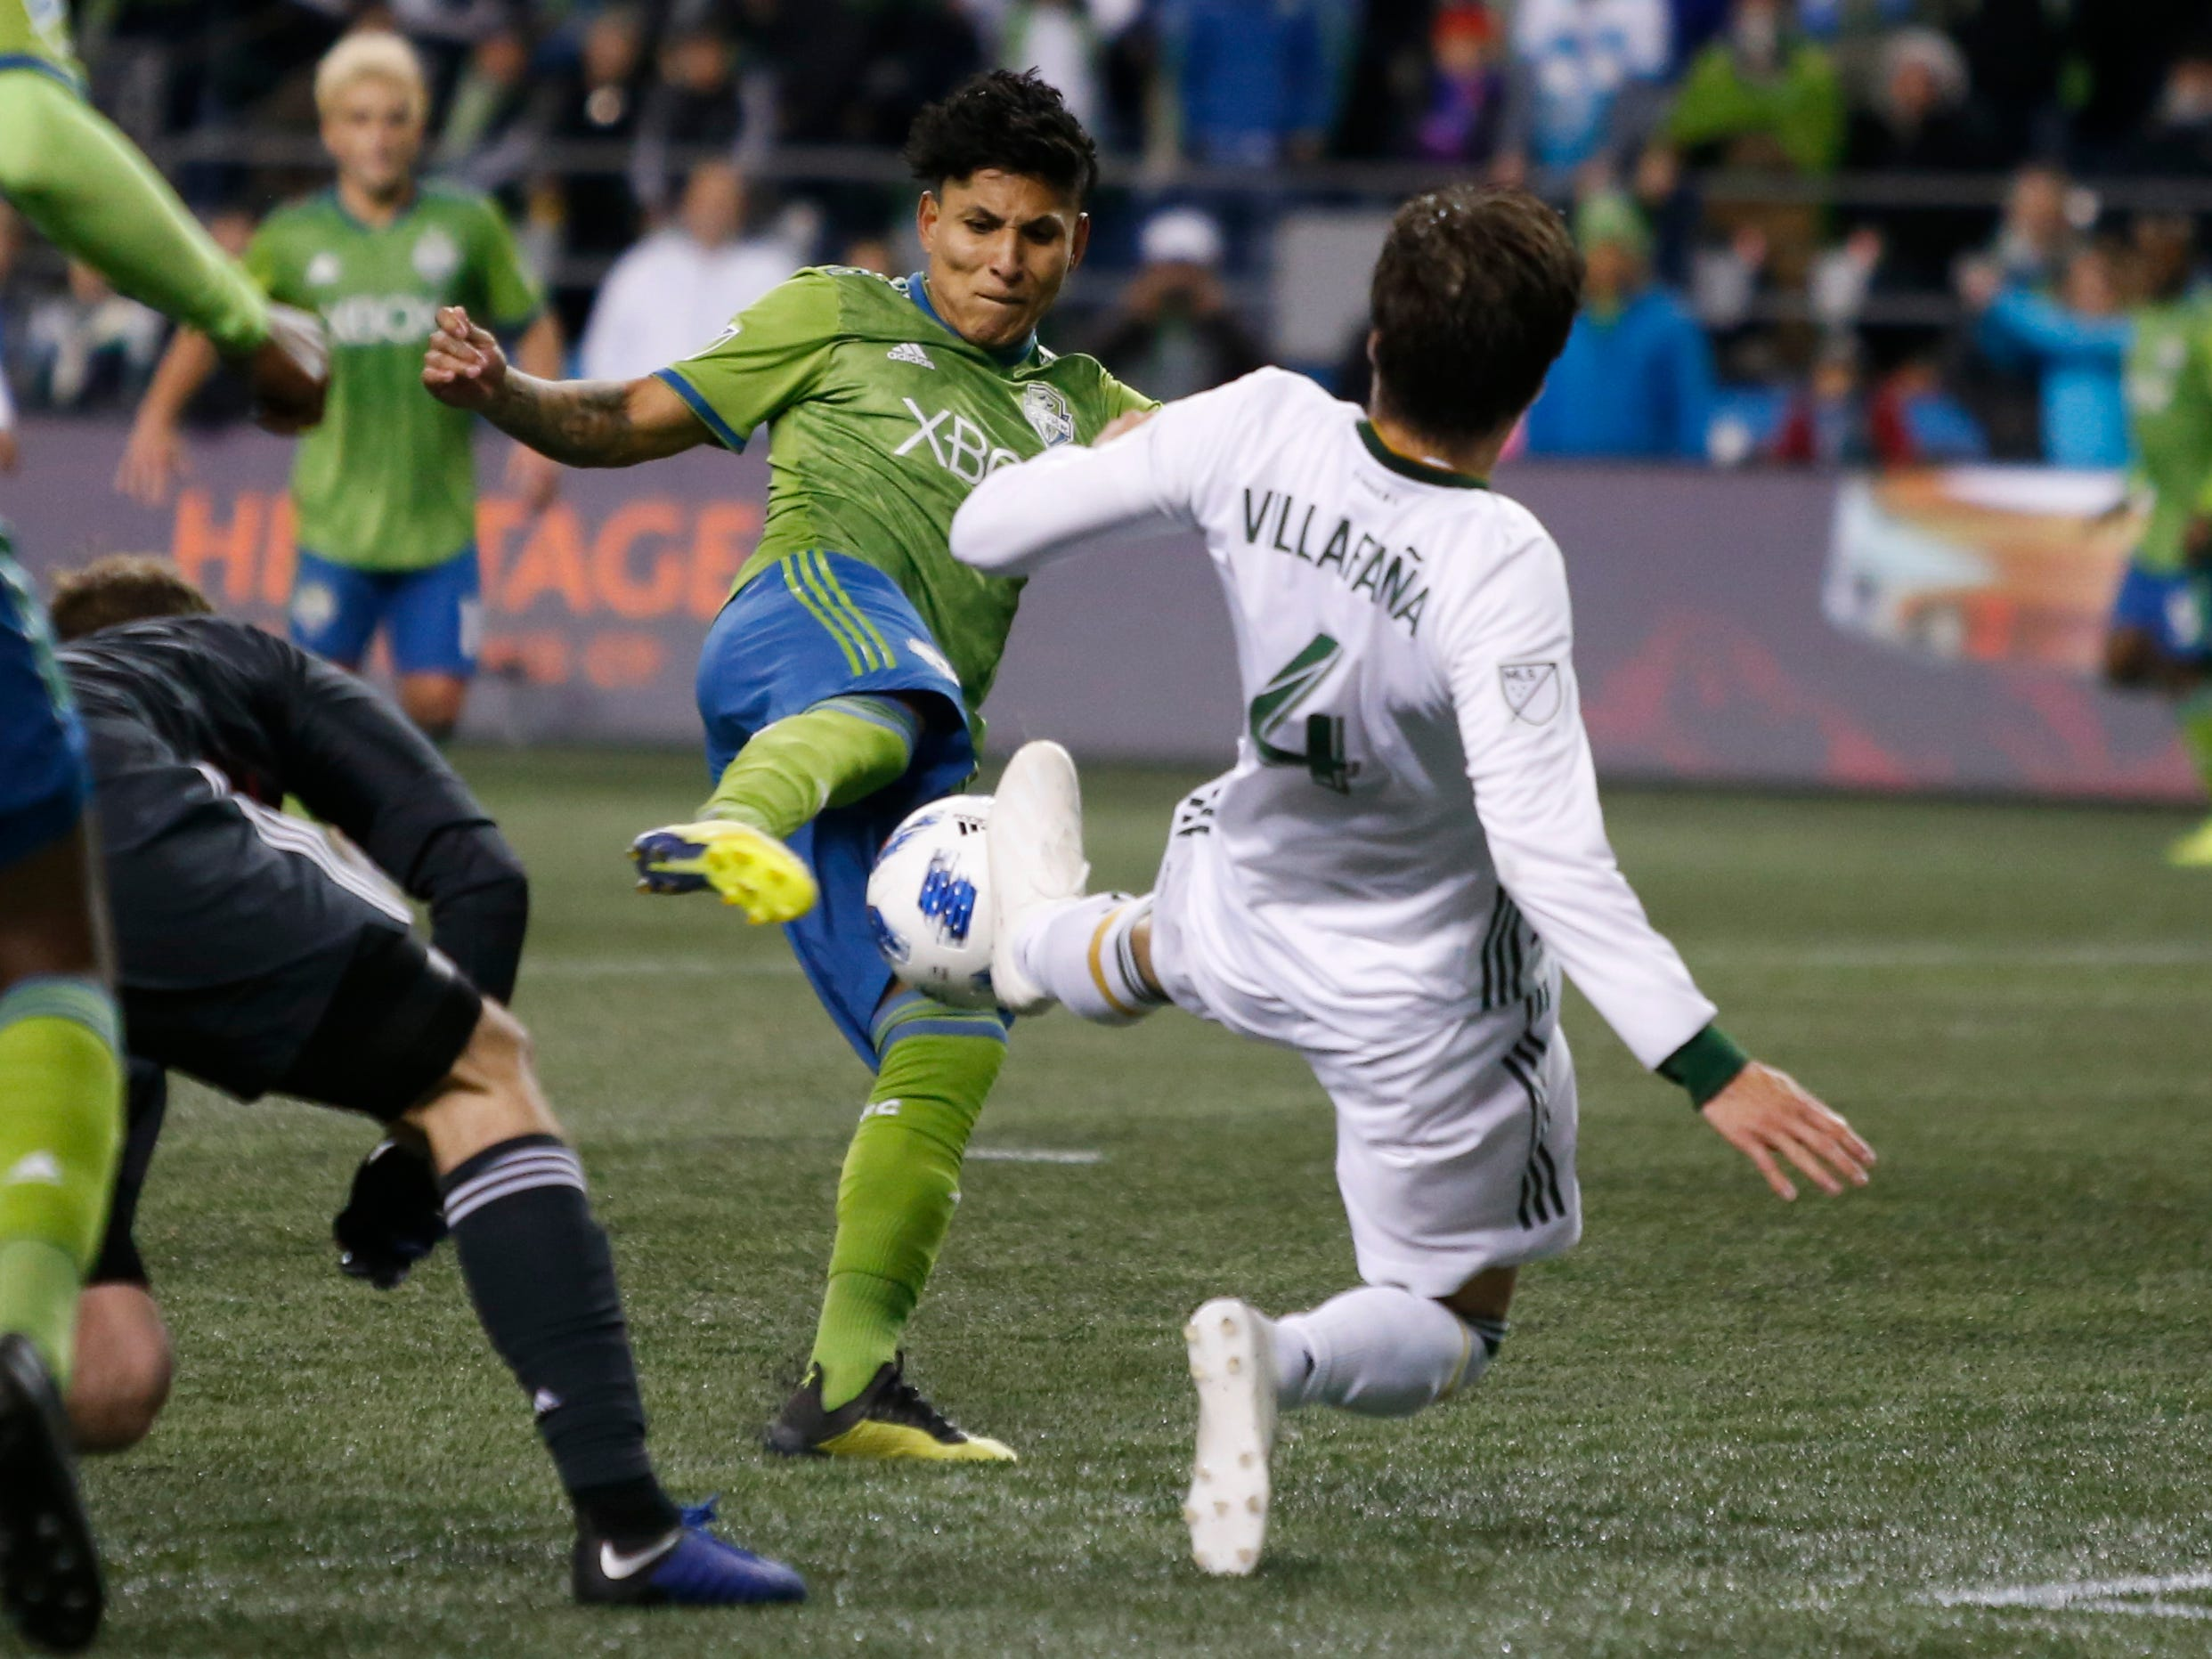 Seattle Sounders FC forward Raul Ruidiaz puts a shot past Portland Timbers defender Jorge Villafana (4) for a goal during the second half at CenturyLink Field.